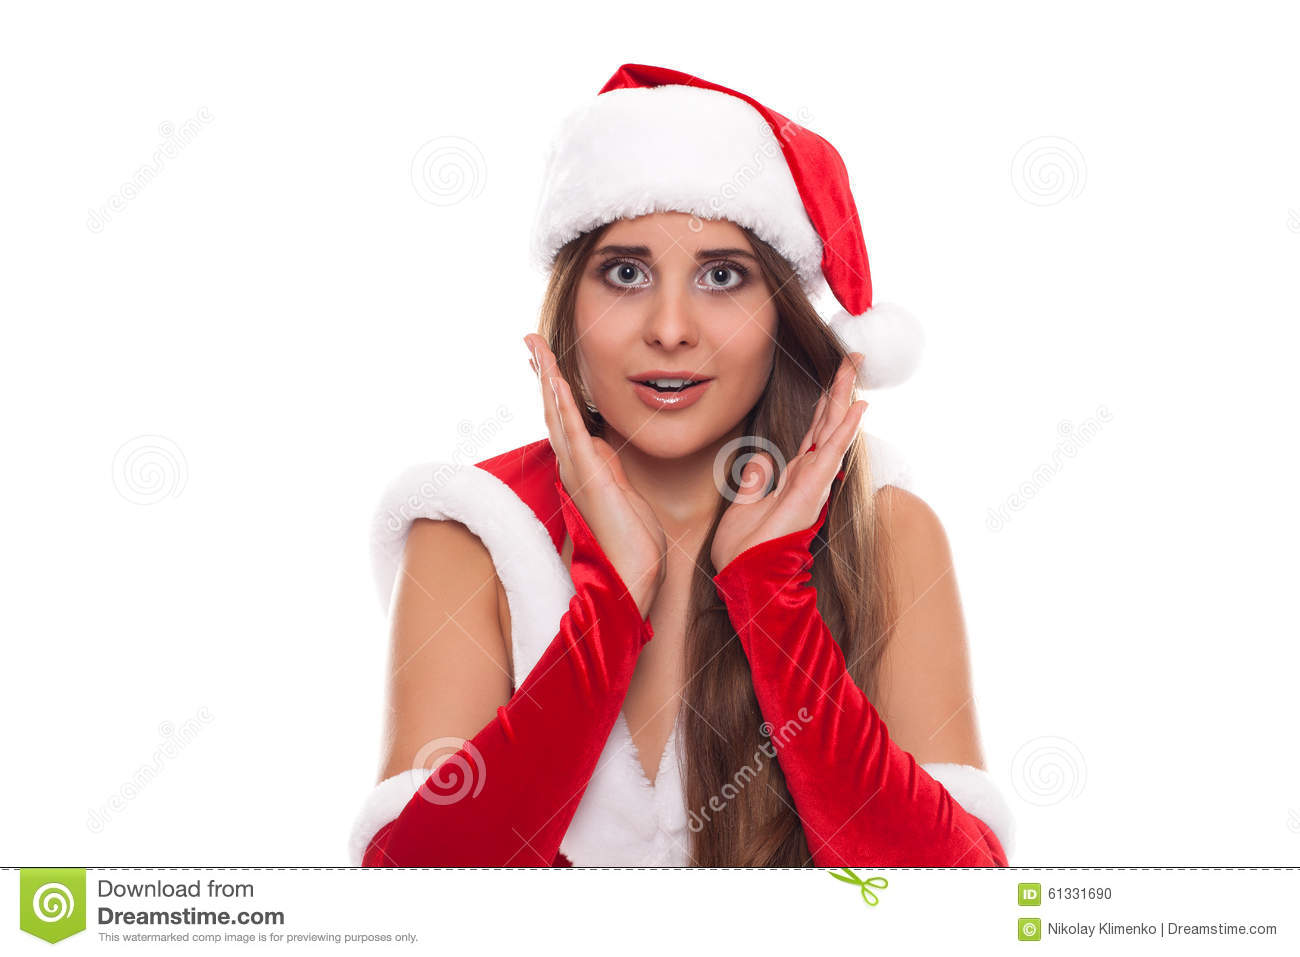 b29e38250a8 Christmas Woman. Beauty Model Girl in Santa Hat isolated on White  Background. Funny Laughing Surprised Woman Portrait. Open Mouth. True  Emotions